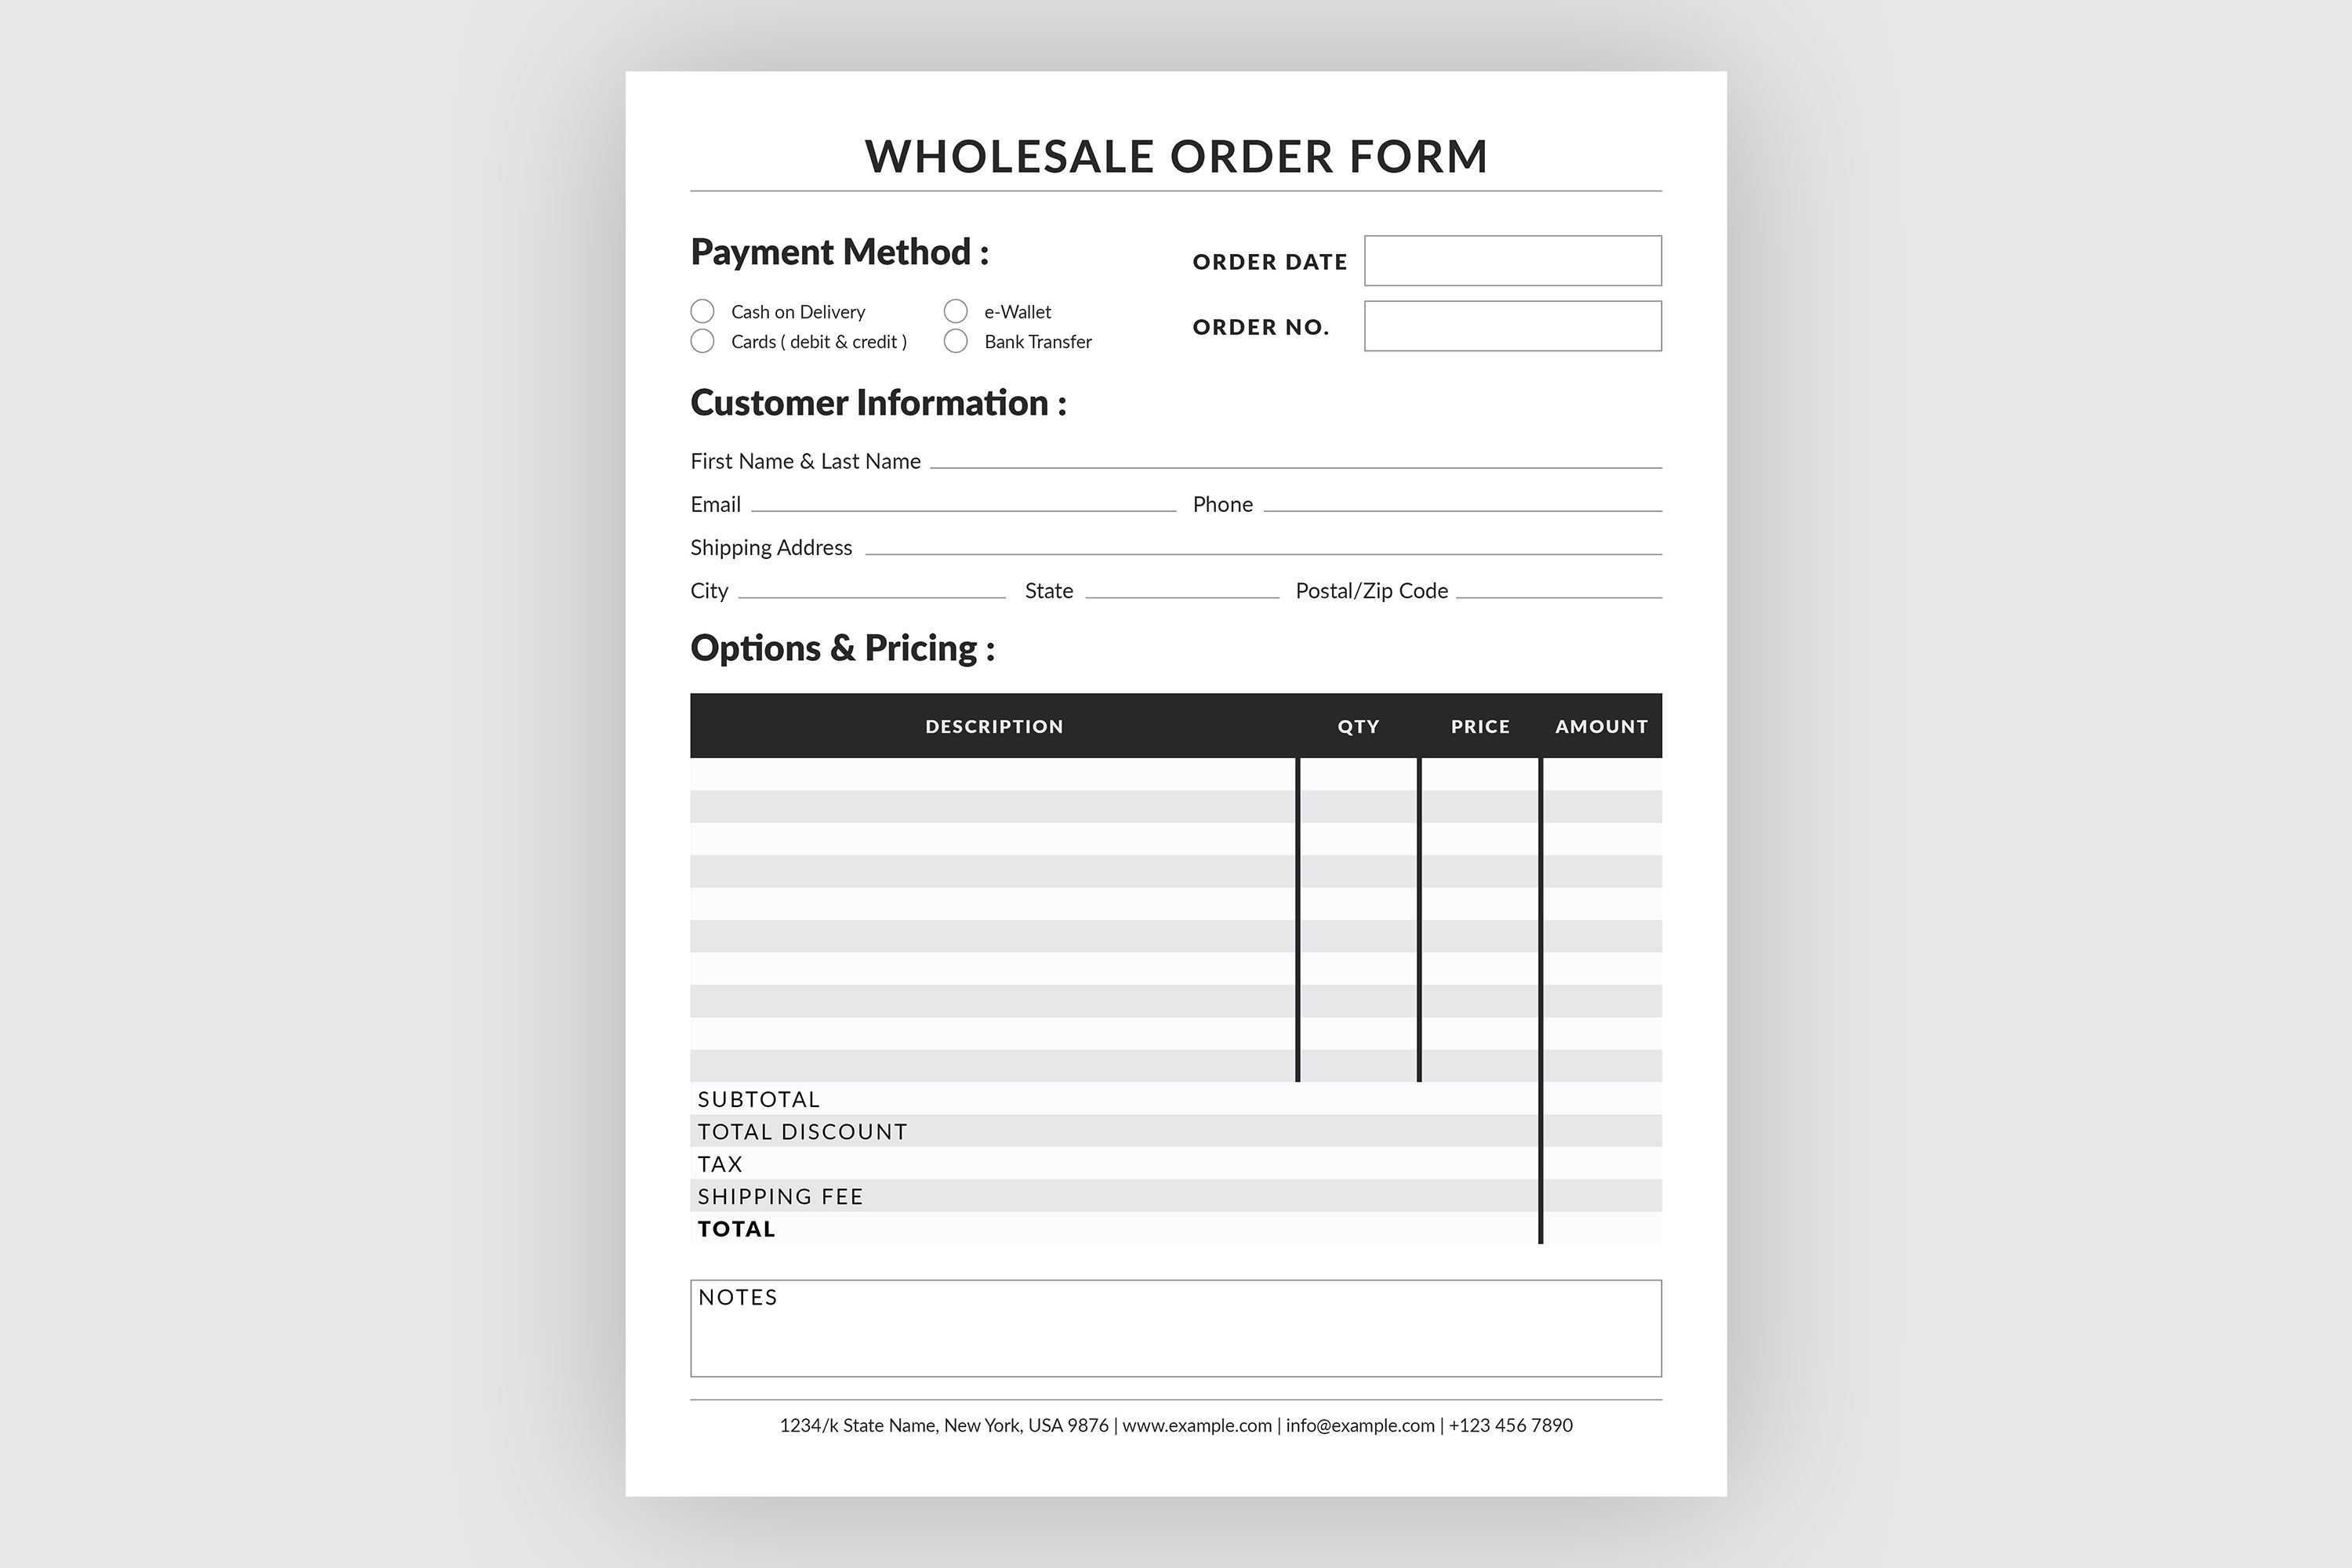 Editable Wholesale Order Form Template example image 3